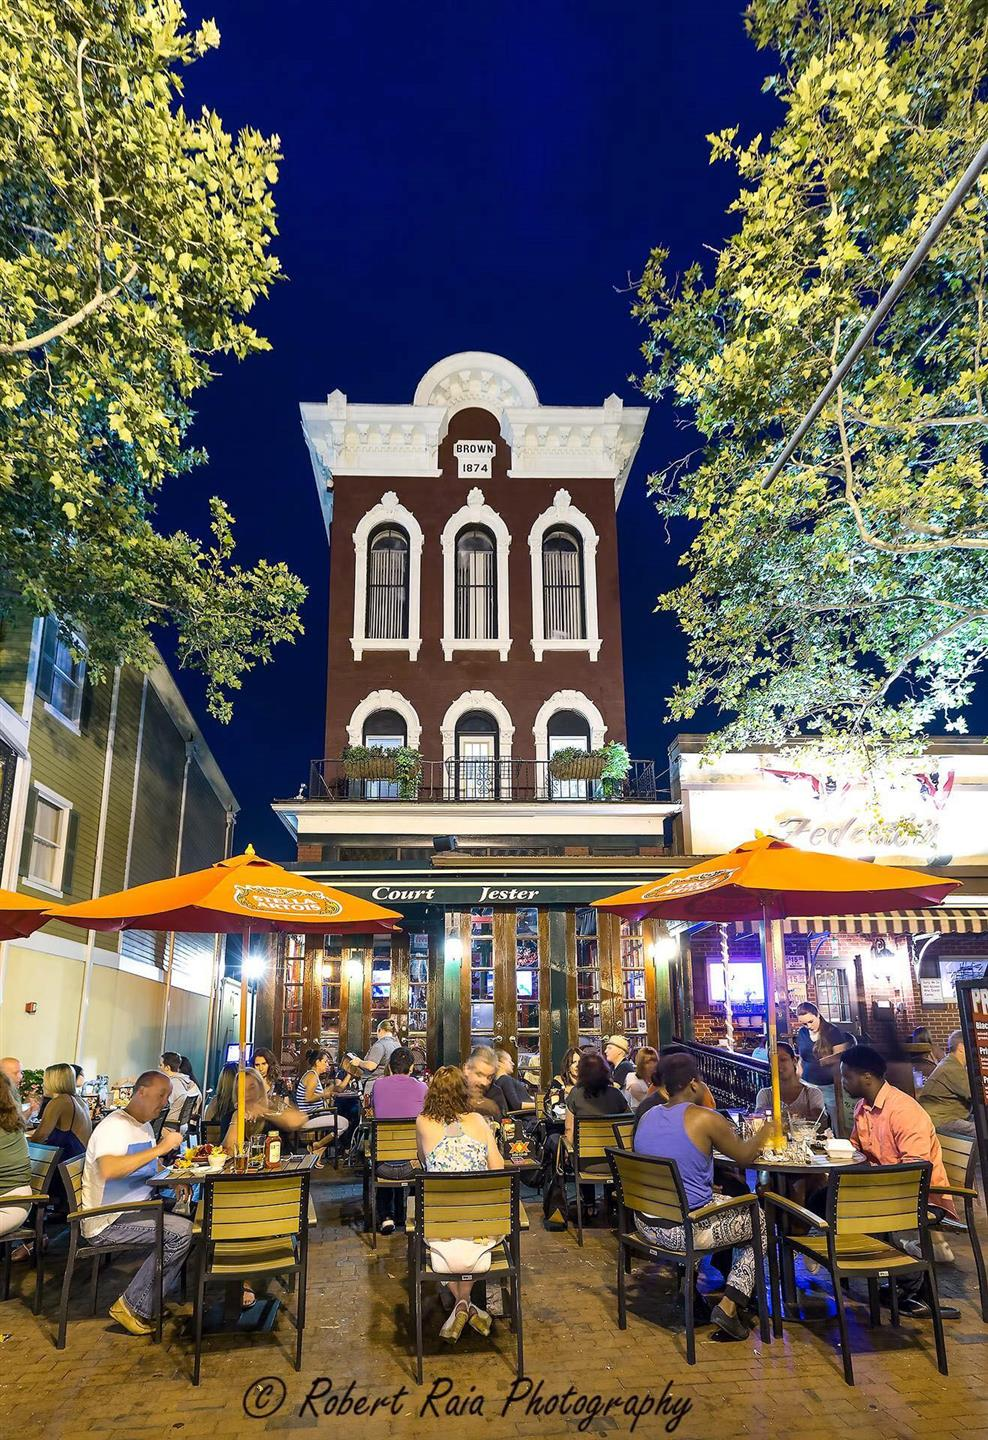 Tall 3 story brick building with outdoor patio filled with people eating